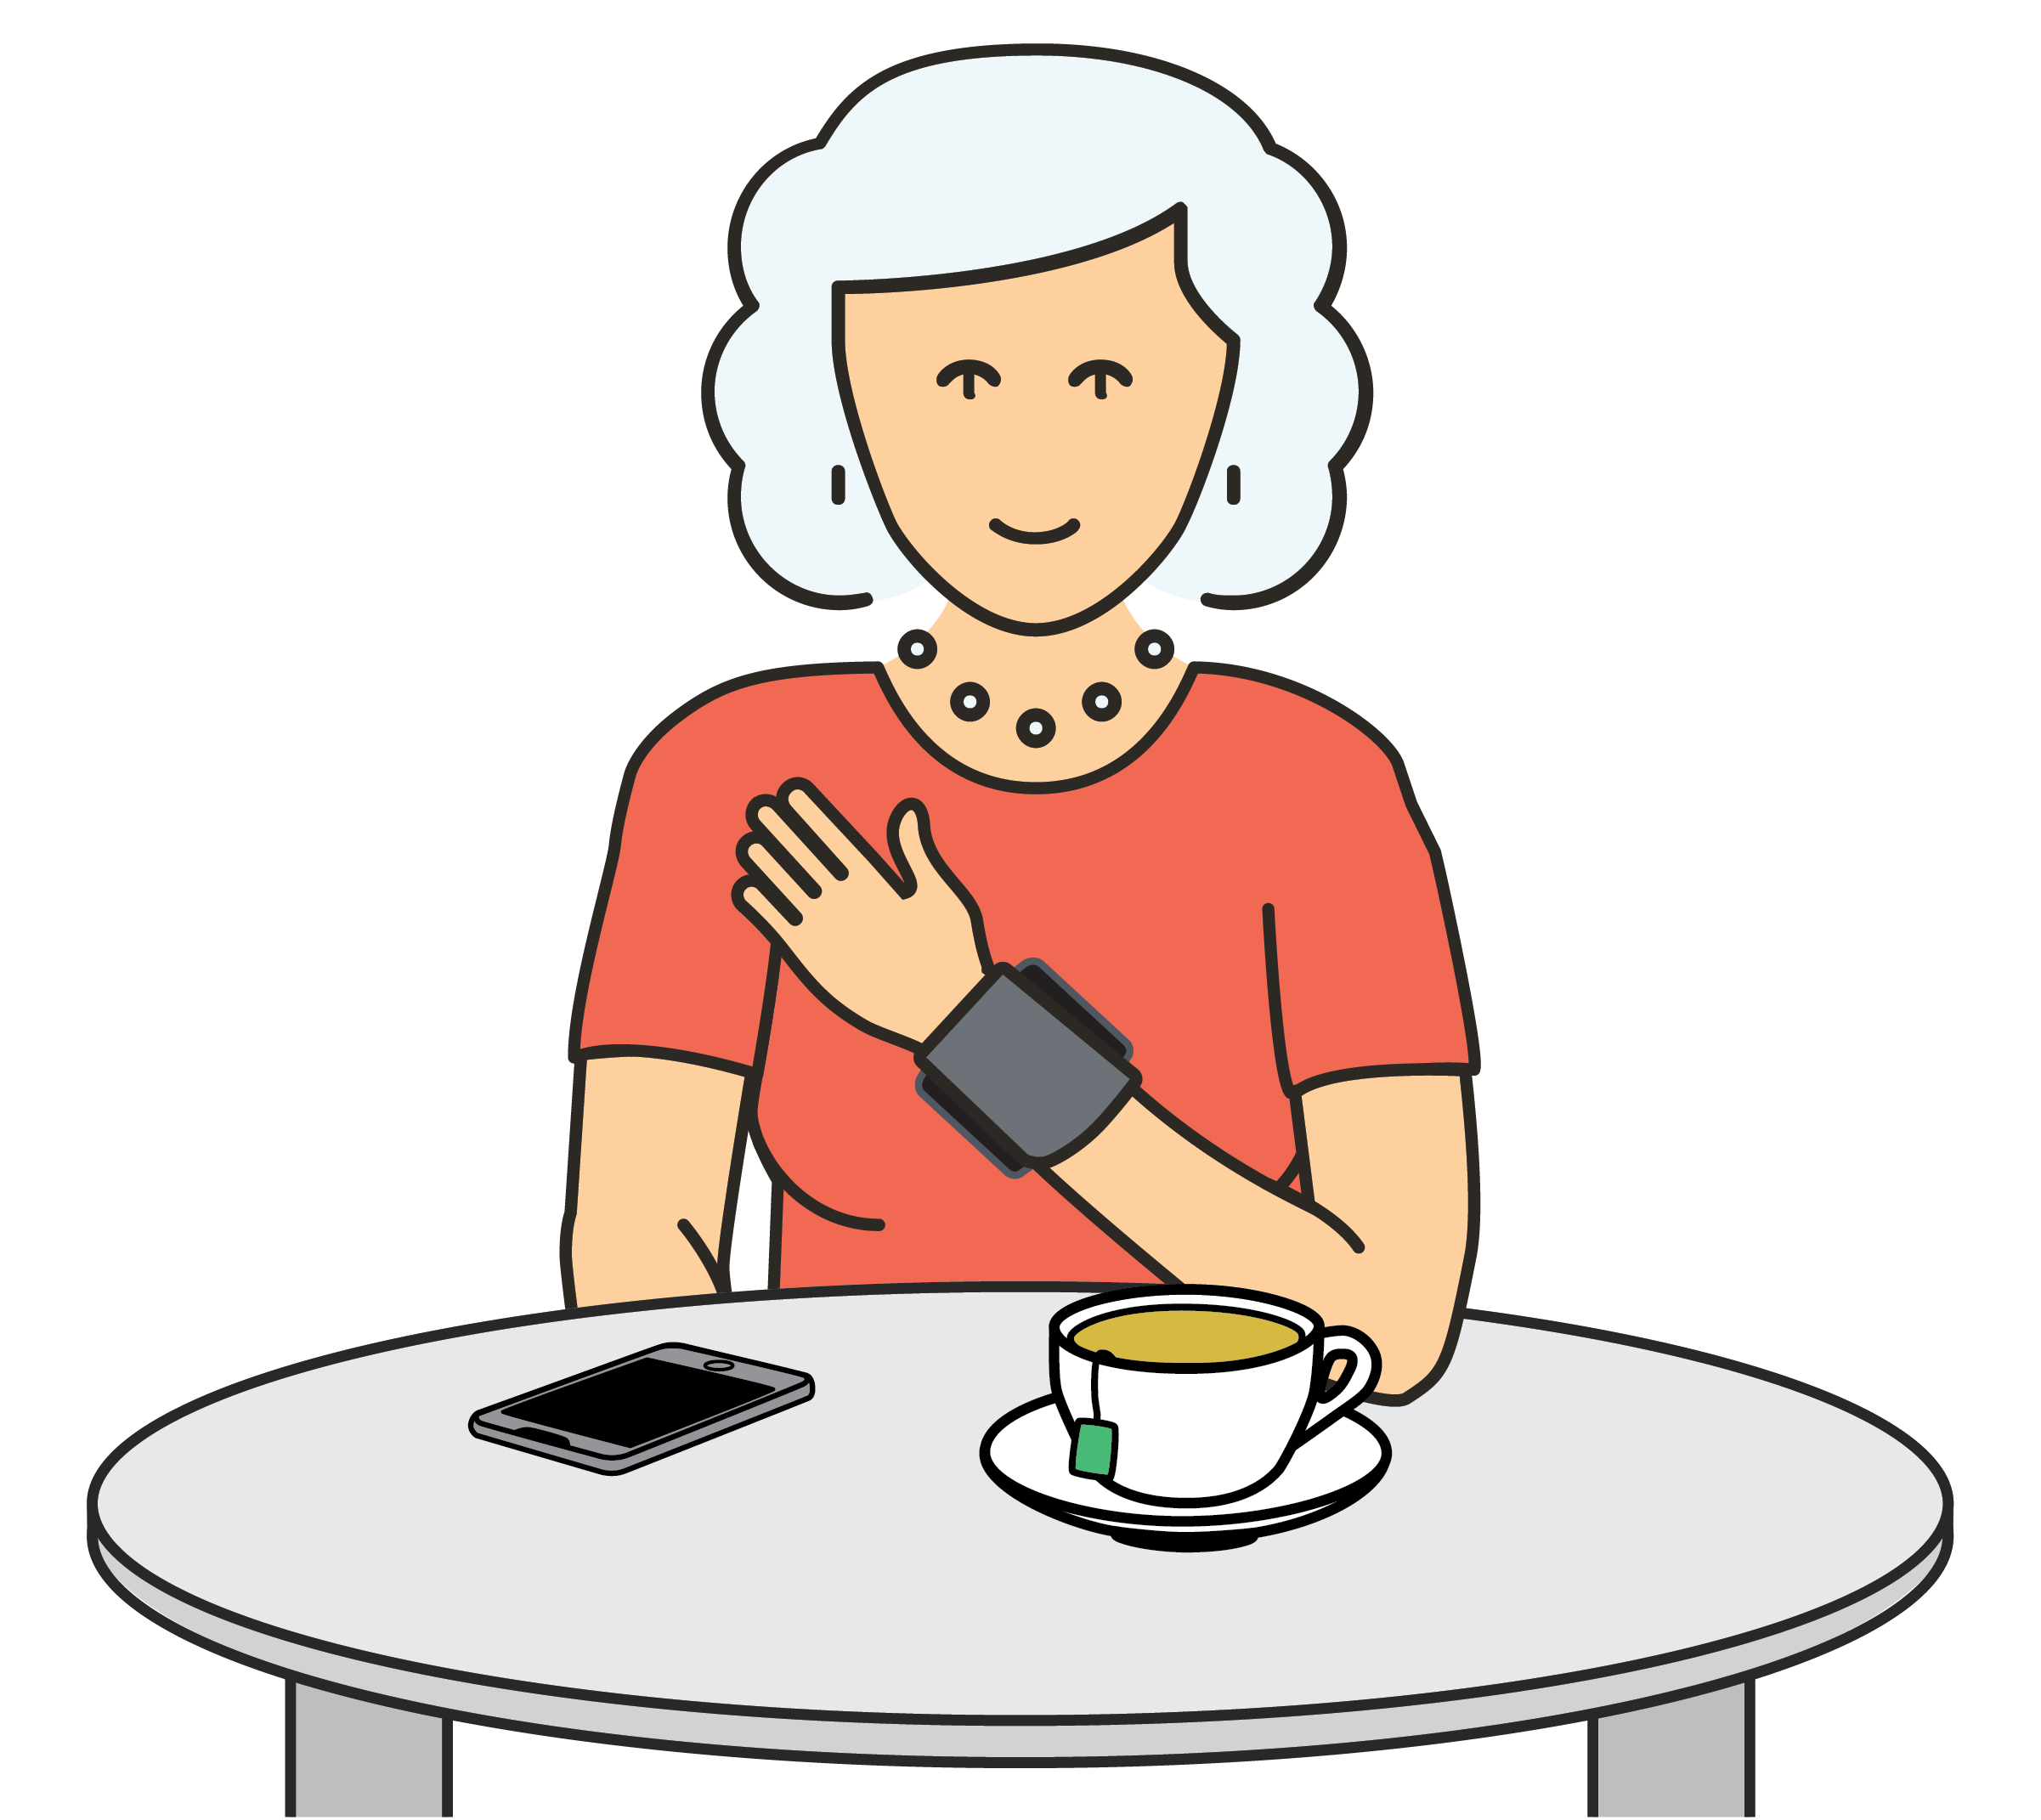 Bridget-pressure-cuff-updated-2-02.png